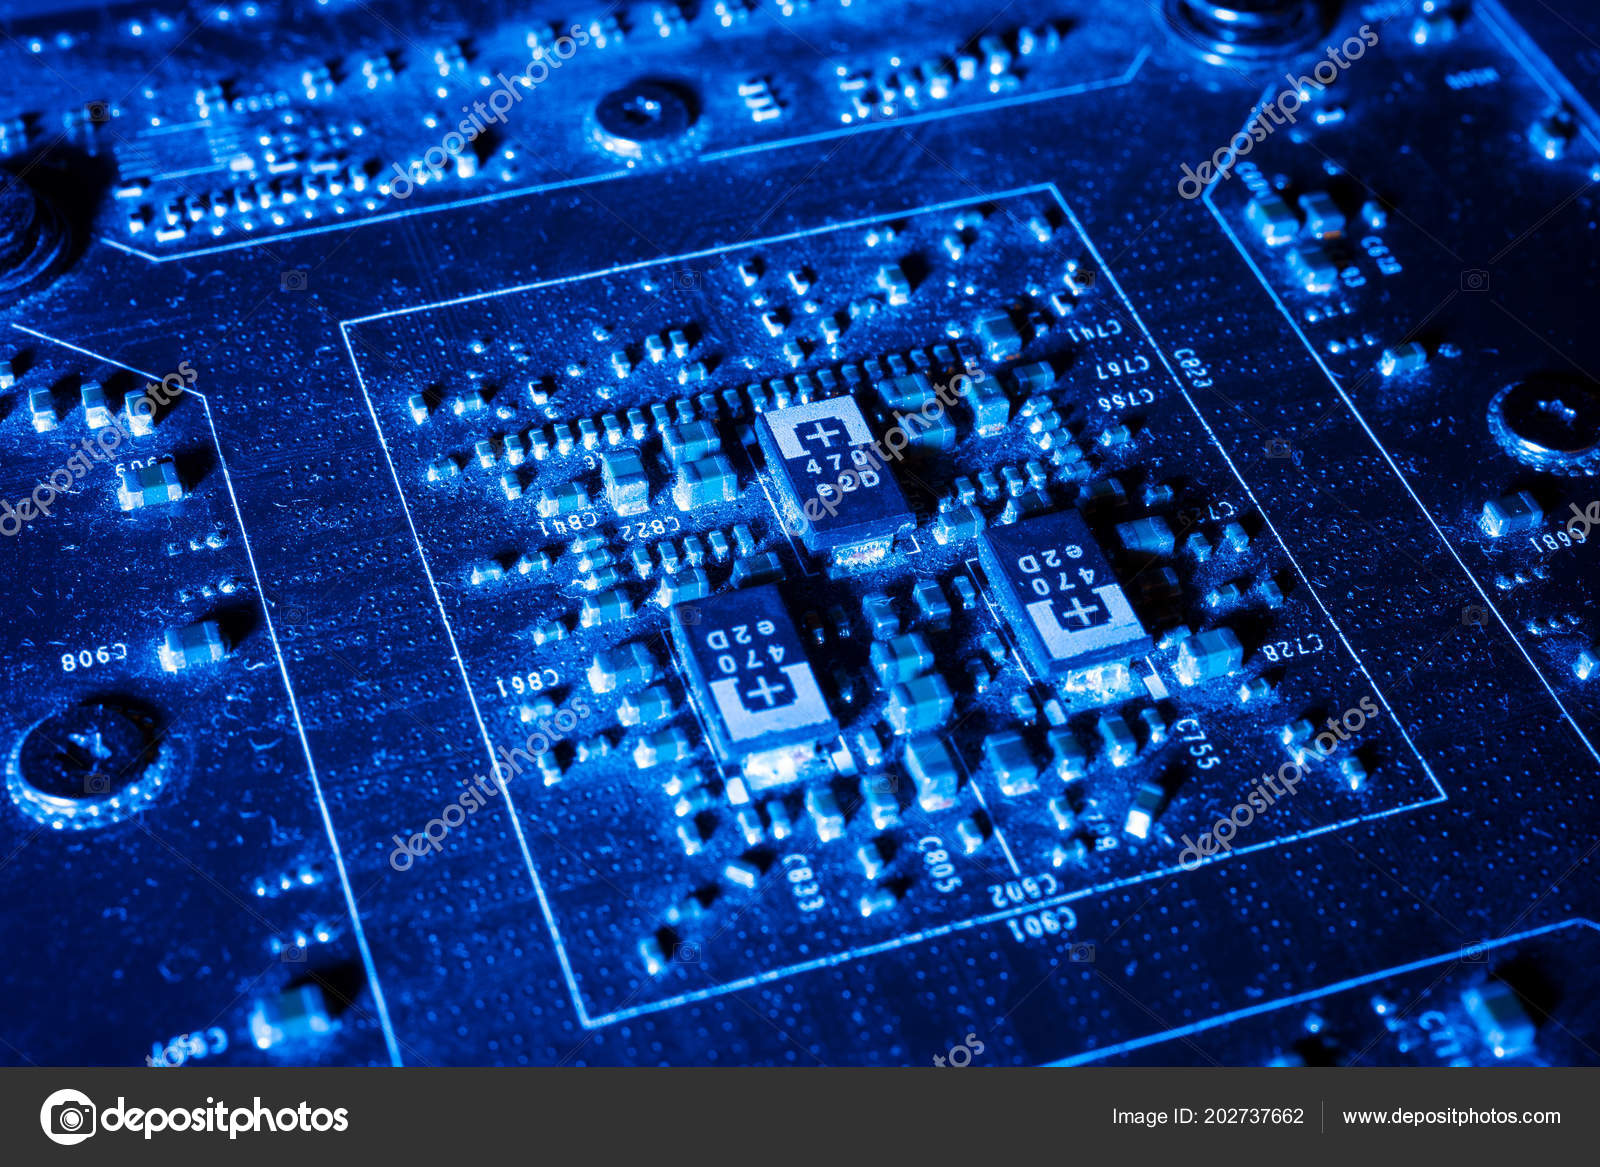 Electronic Circuits Futuristic Technology Concept Mainboard Computer Integrated Used As Background Royalty Free Stock Photos Blue Abstract Photo